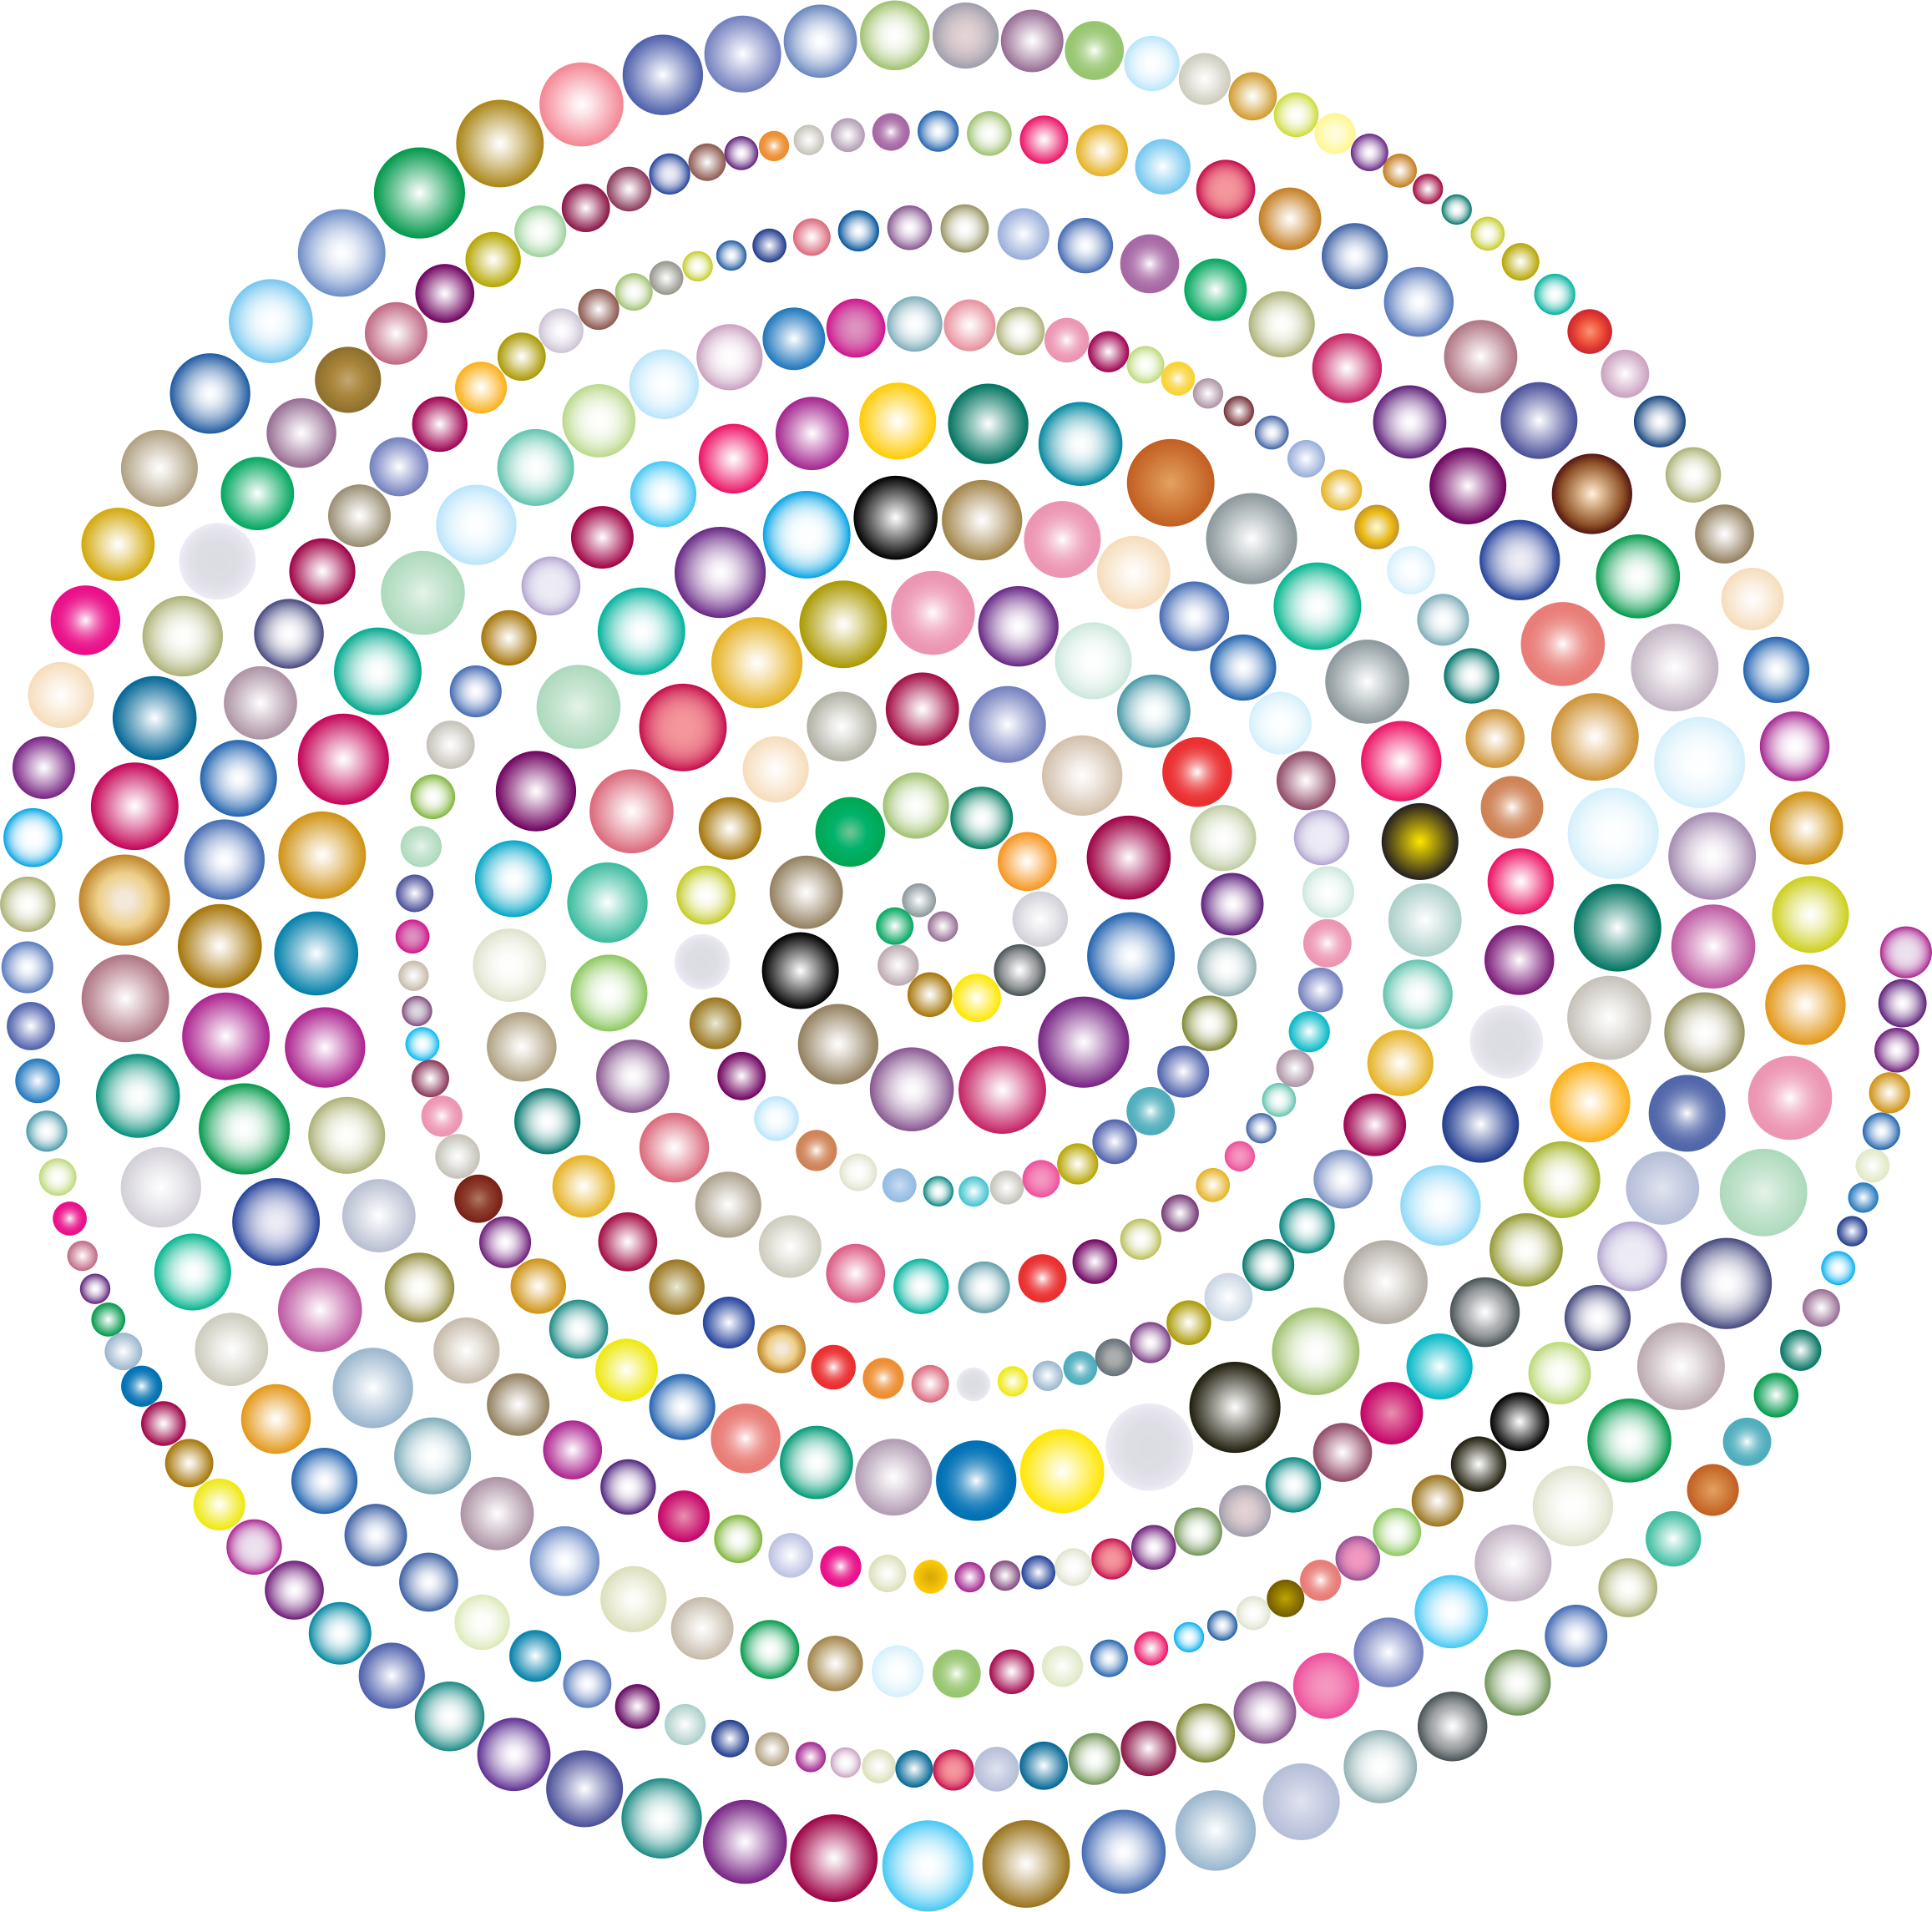 Circles Spiral Prismatic 2 by GDJ